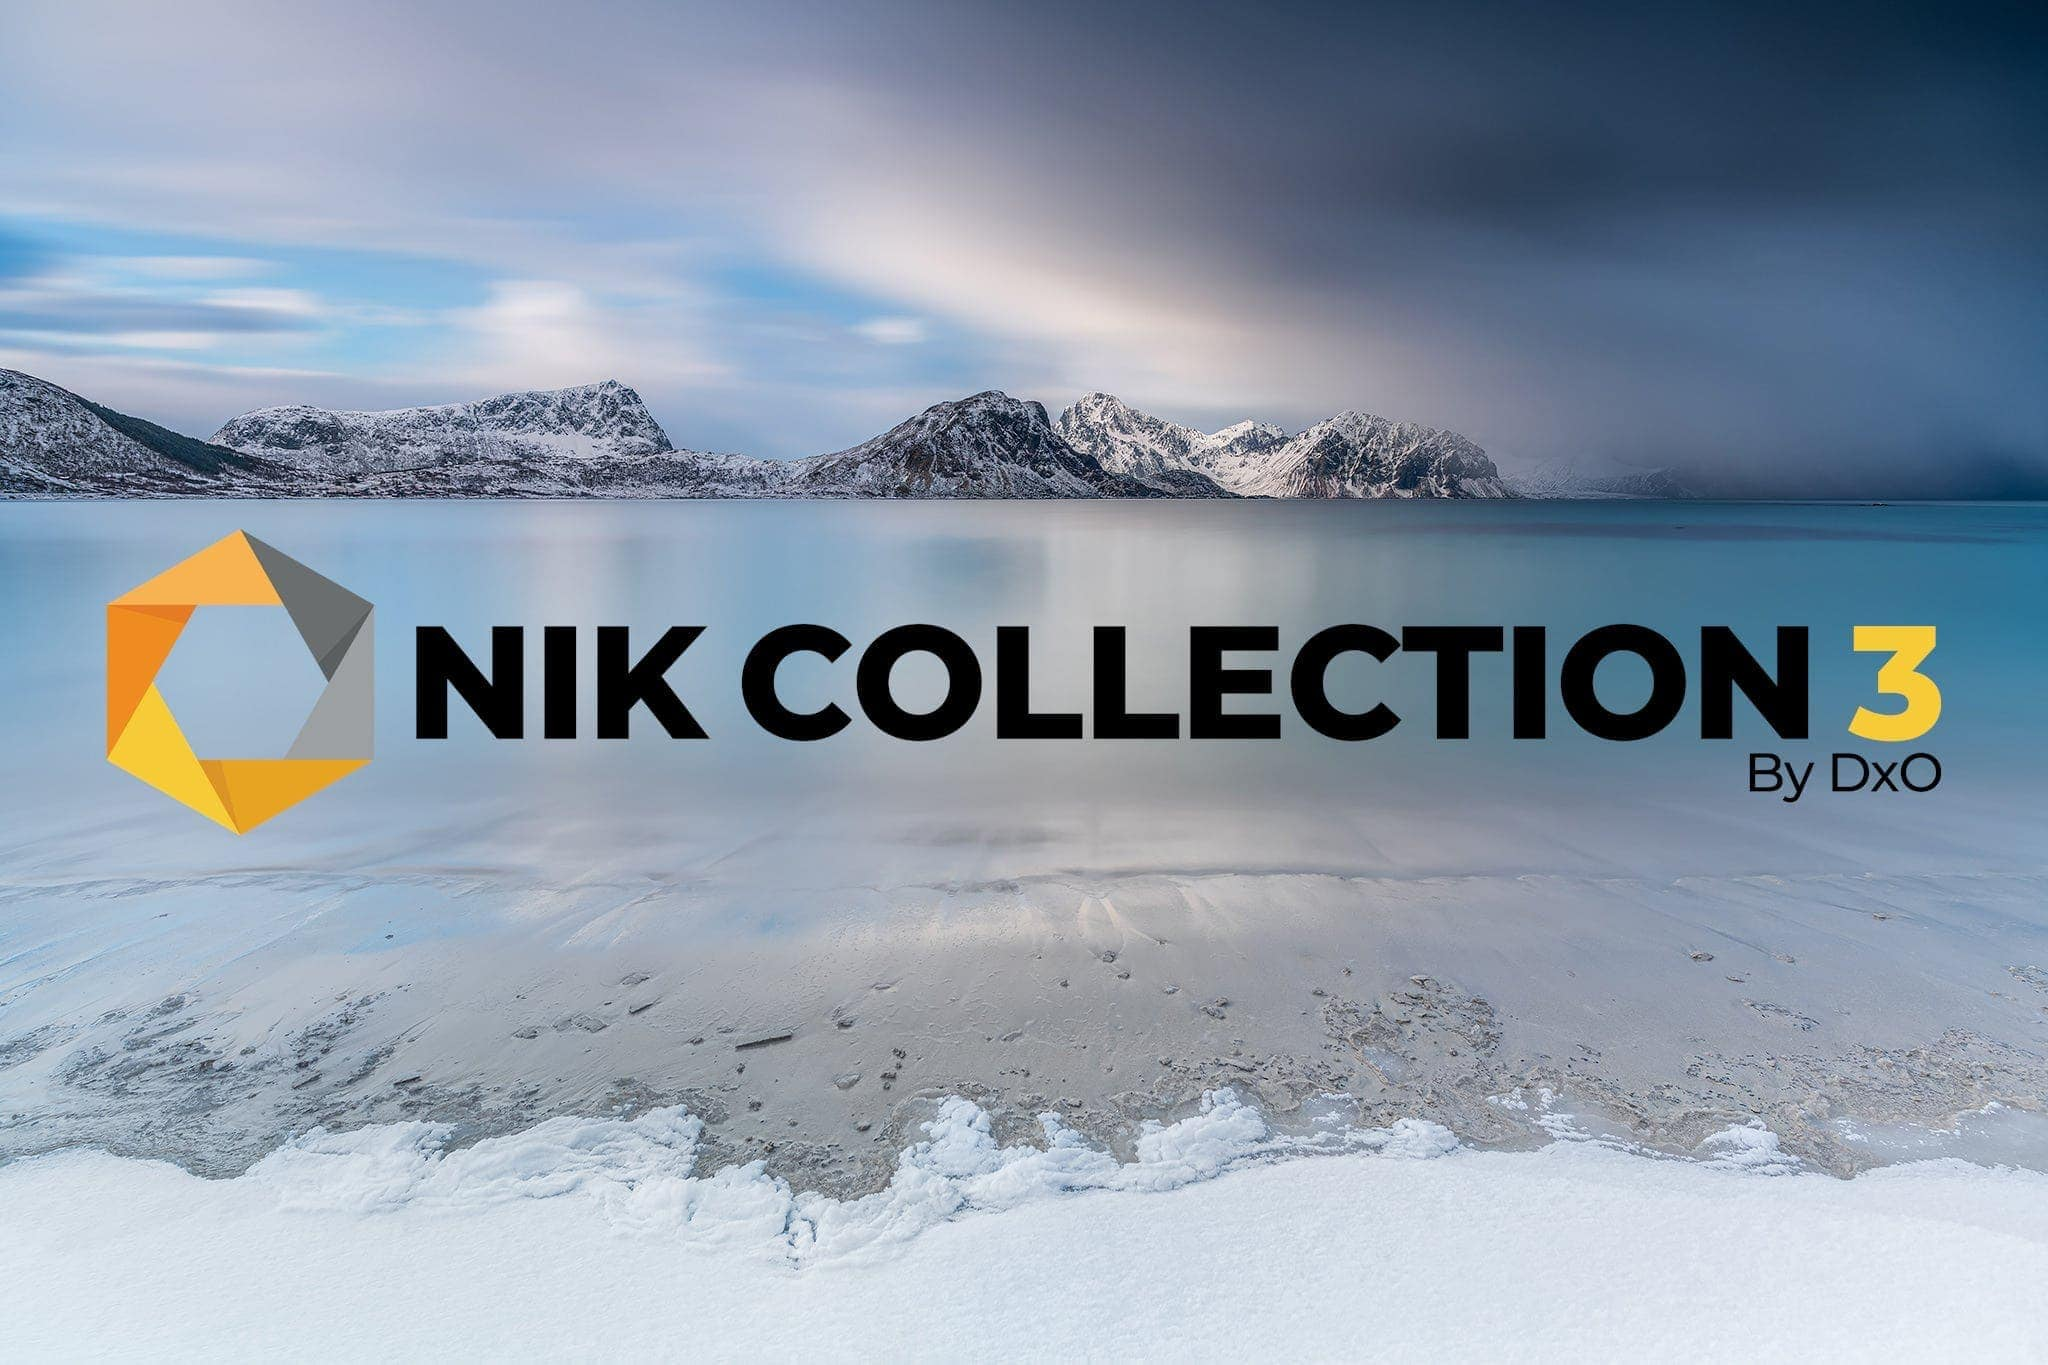 Trágico Cíclope Hombre  New Nik Collection 3 by DxO Released! | Francesco Gola